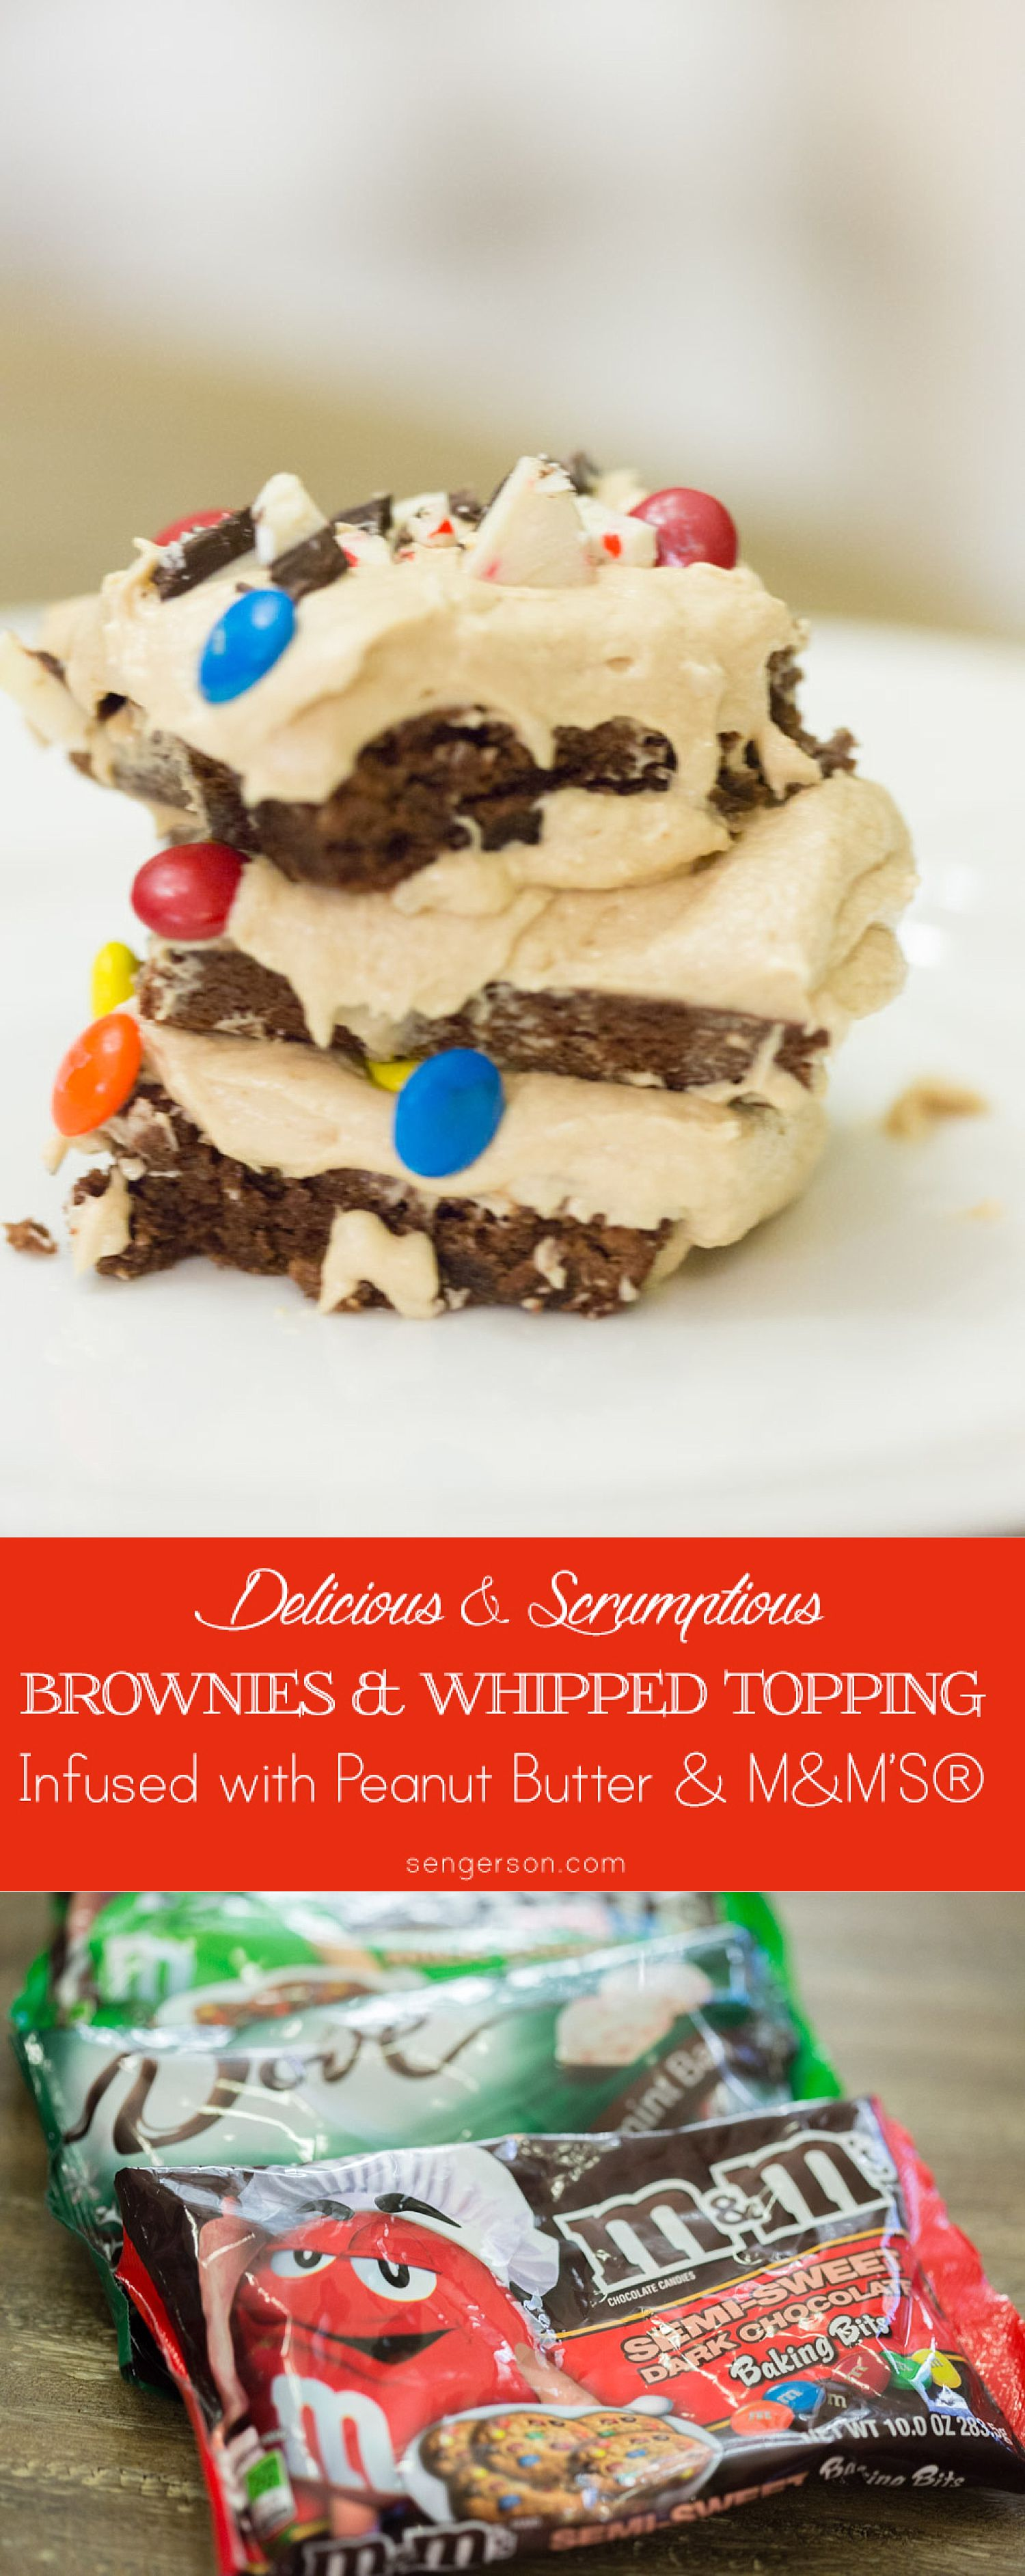 Whipped Peanut Butter Chocolate Fudge Brownies